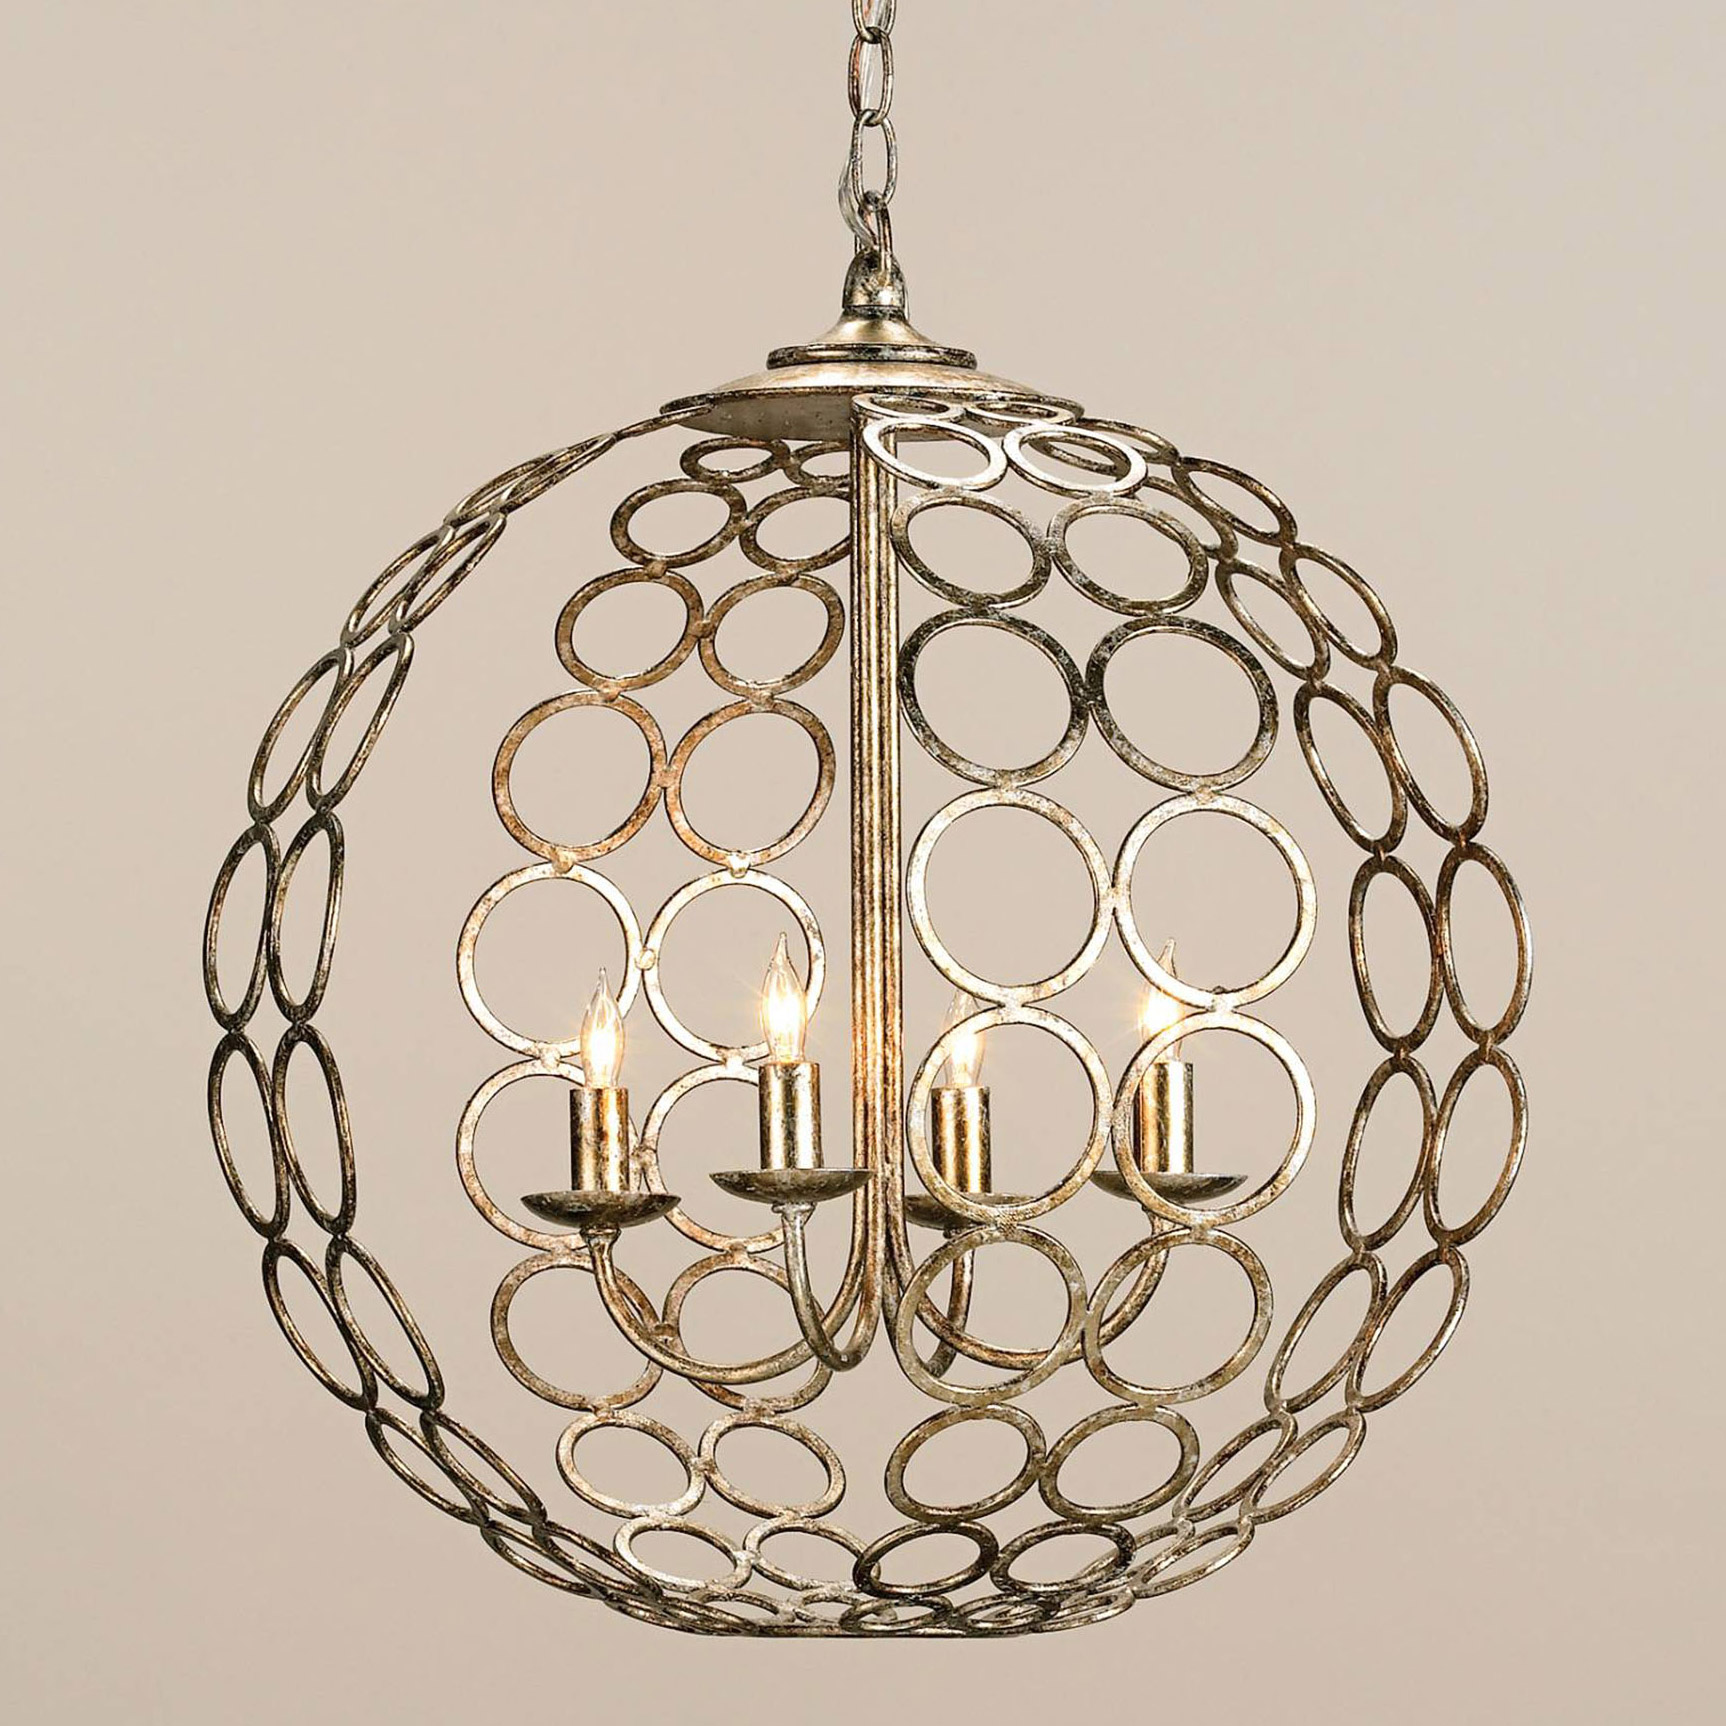 Currey And Company Orb Chandelier: Currey And Company 9961 Tartufo Orb Chandelier